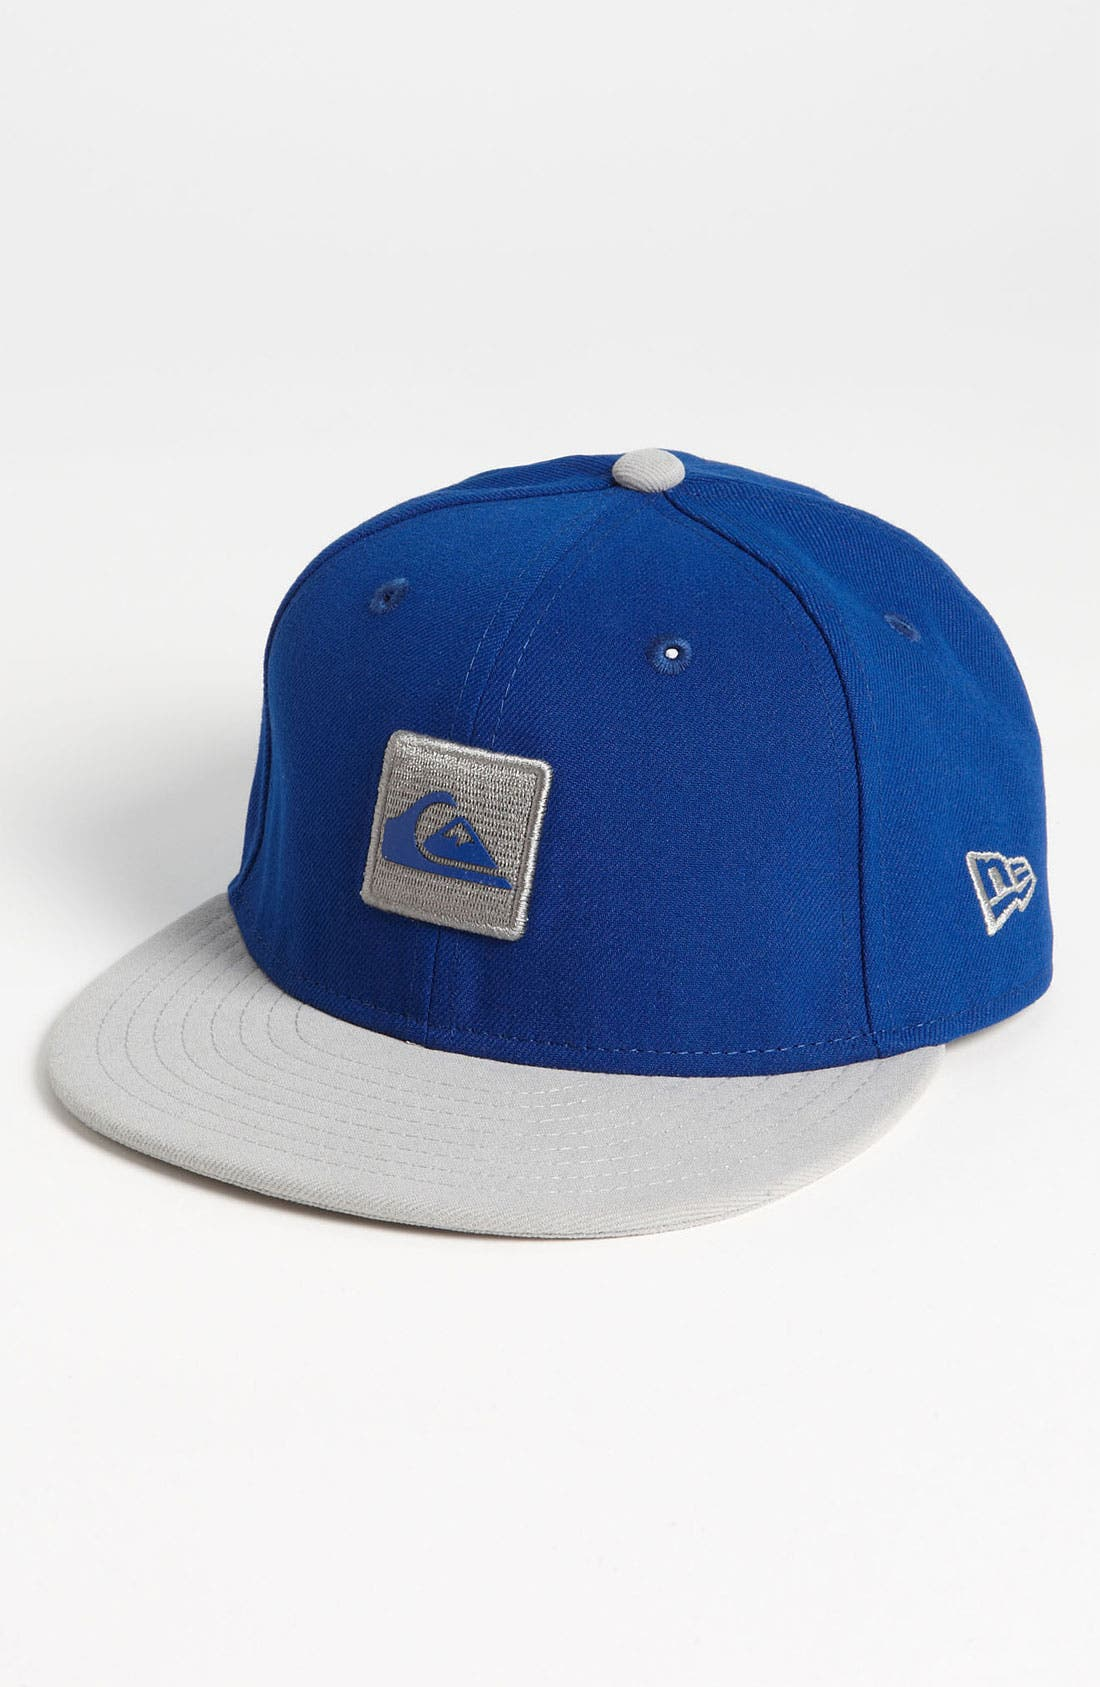 'Slug' Baseball Cap,                             Main thumbnail 1, color,                             400